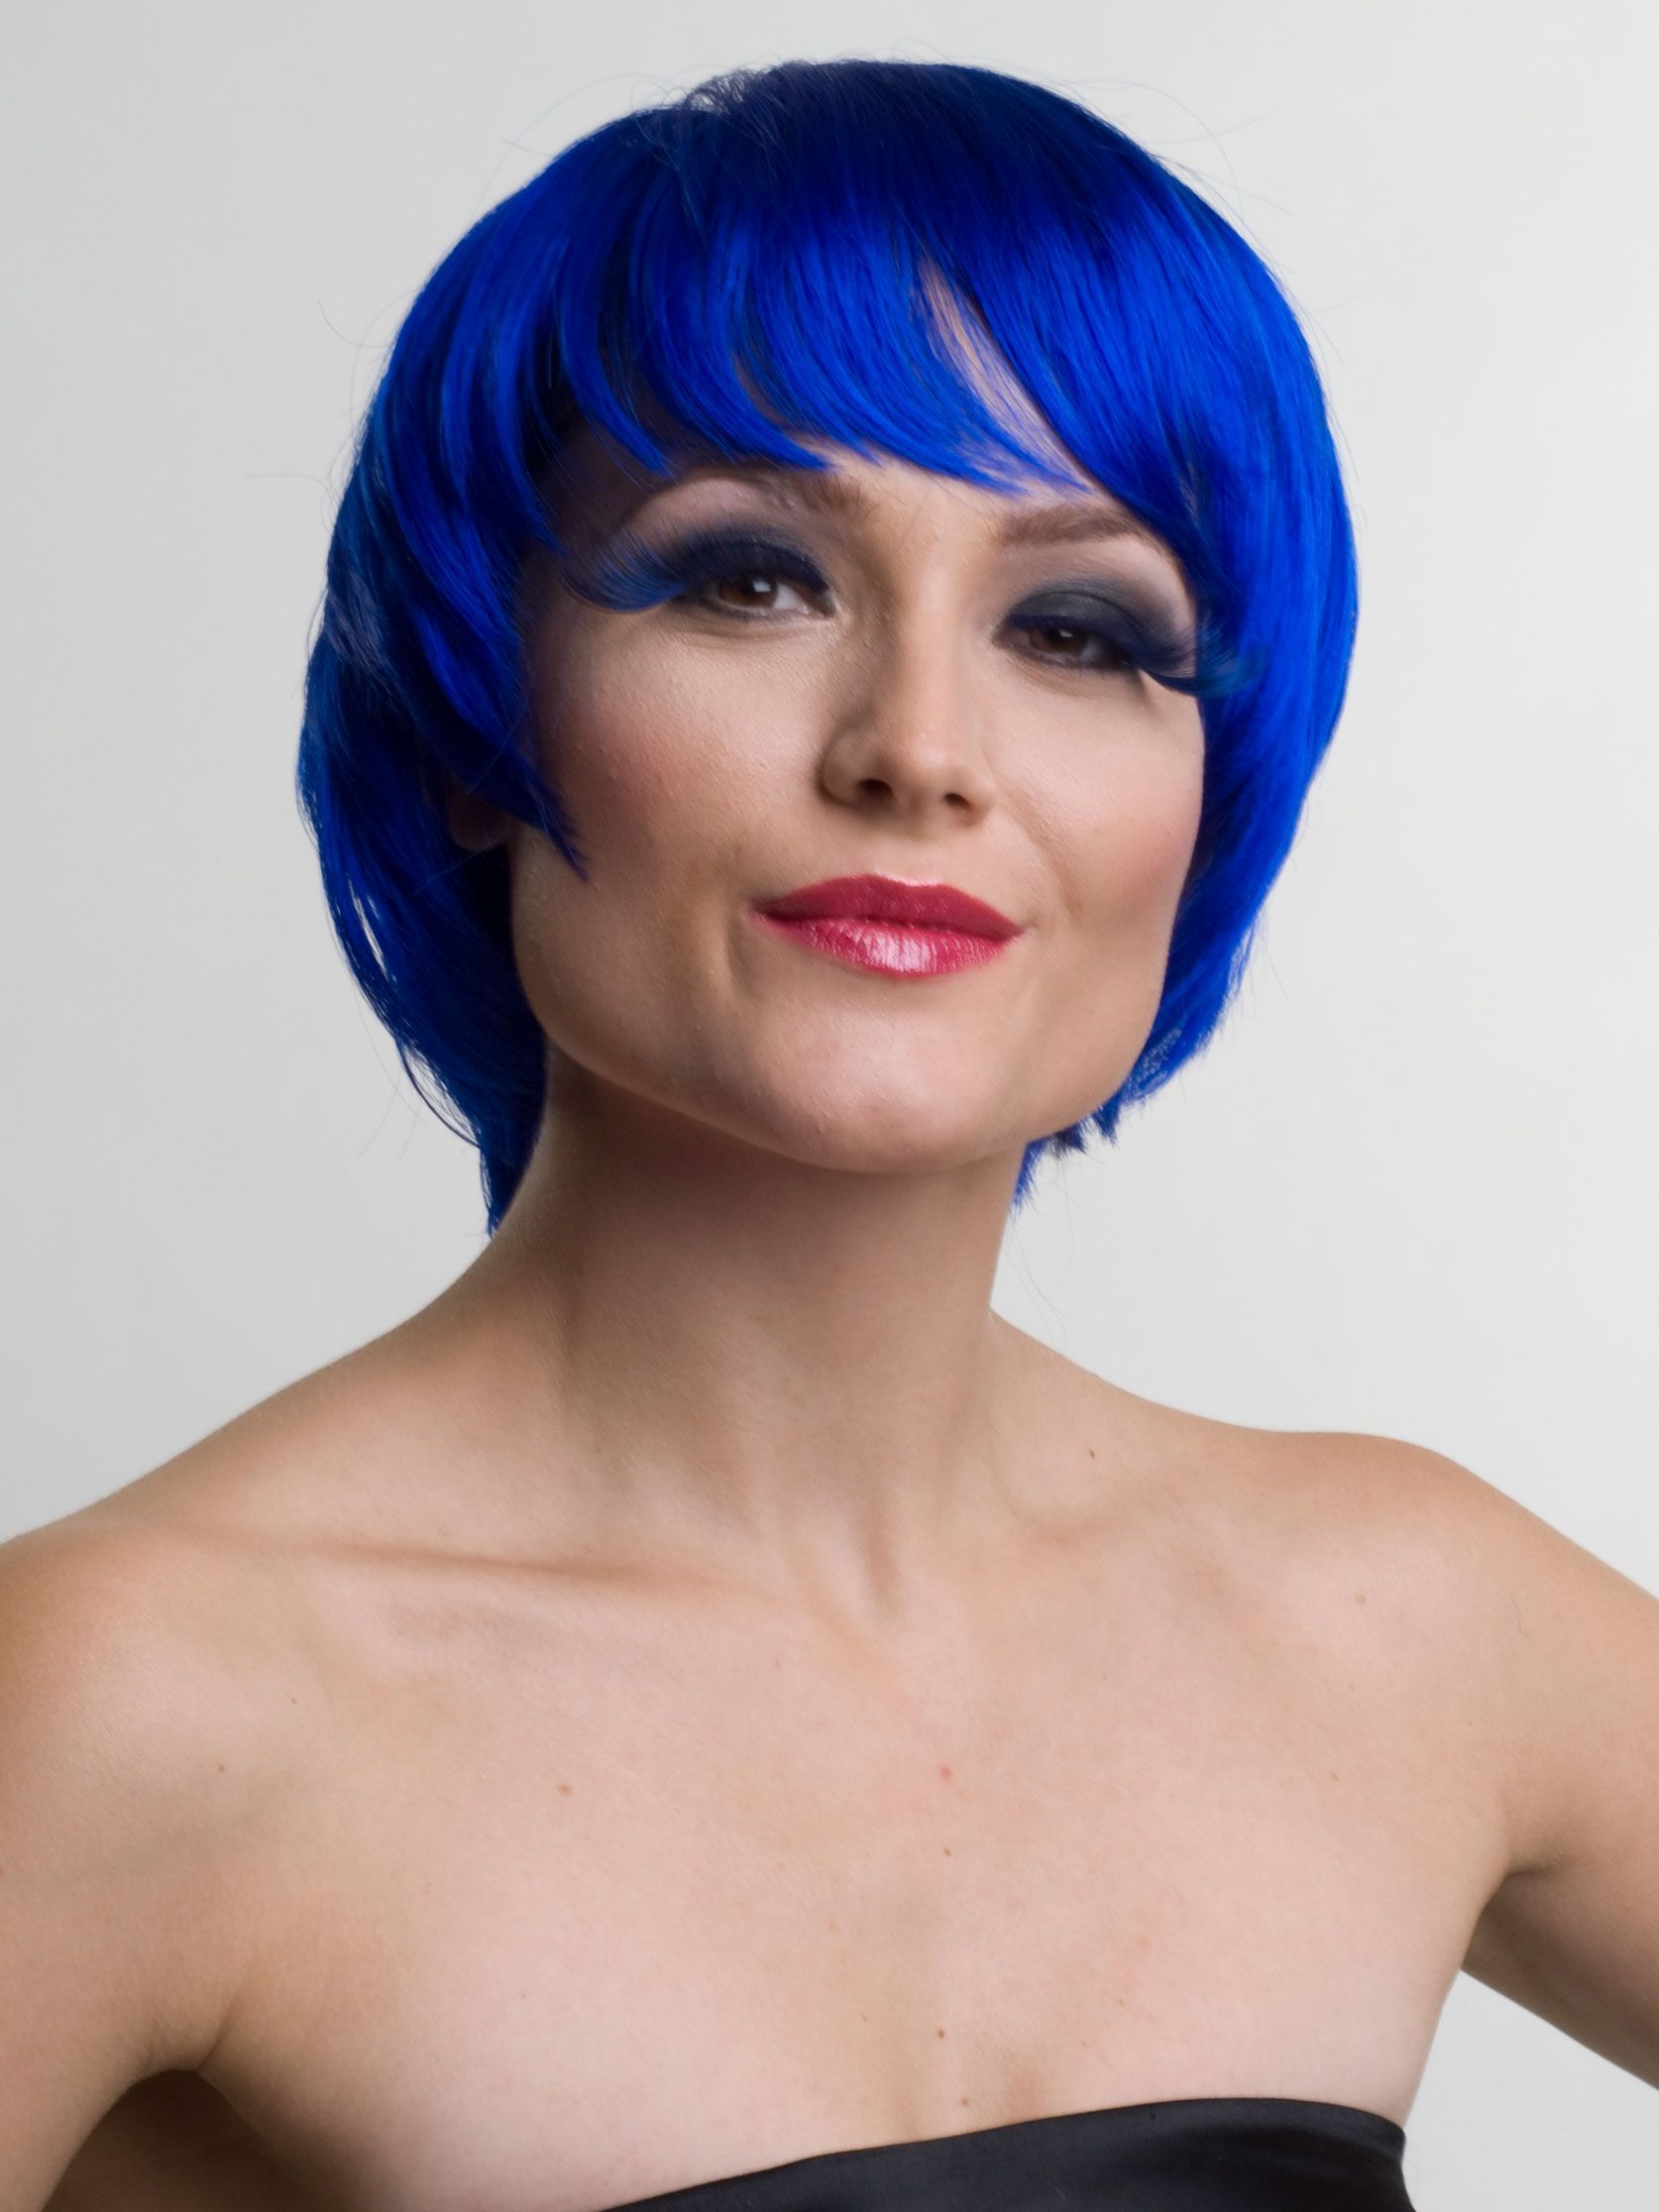 Blue Wigs Lace Frontal Wigs Cheap Human Wigs Red And Blue Ombre Hair Dark Hair With Blue Tint Dark Blue Hair Without Bleach